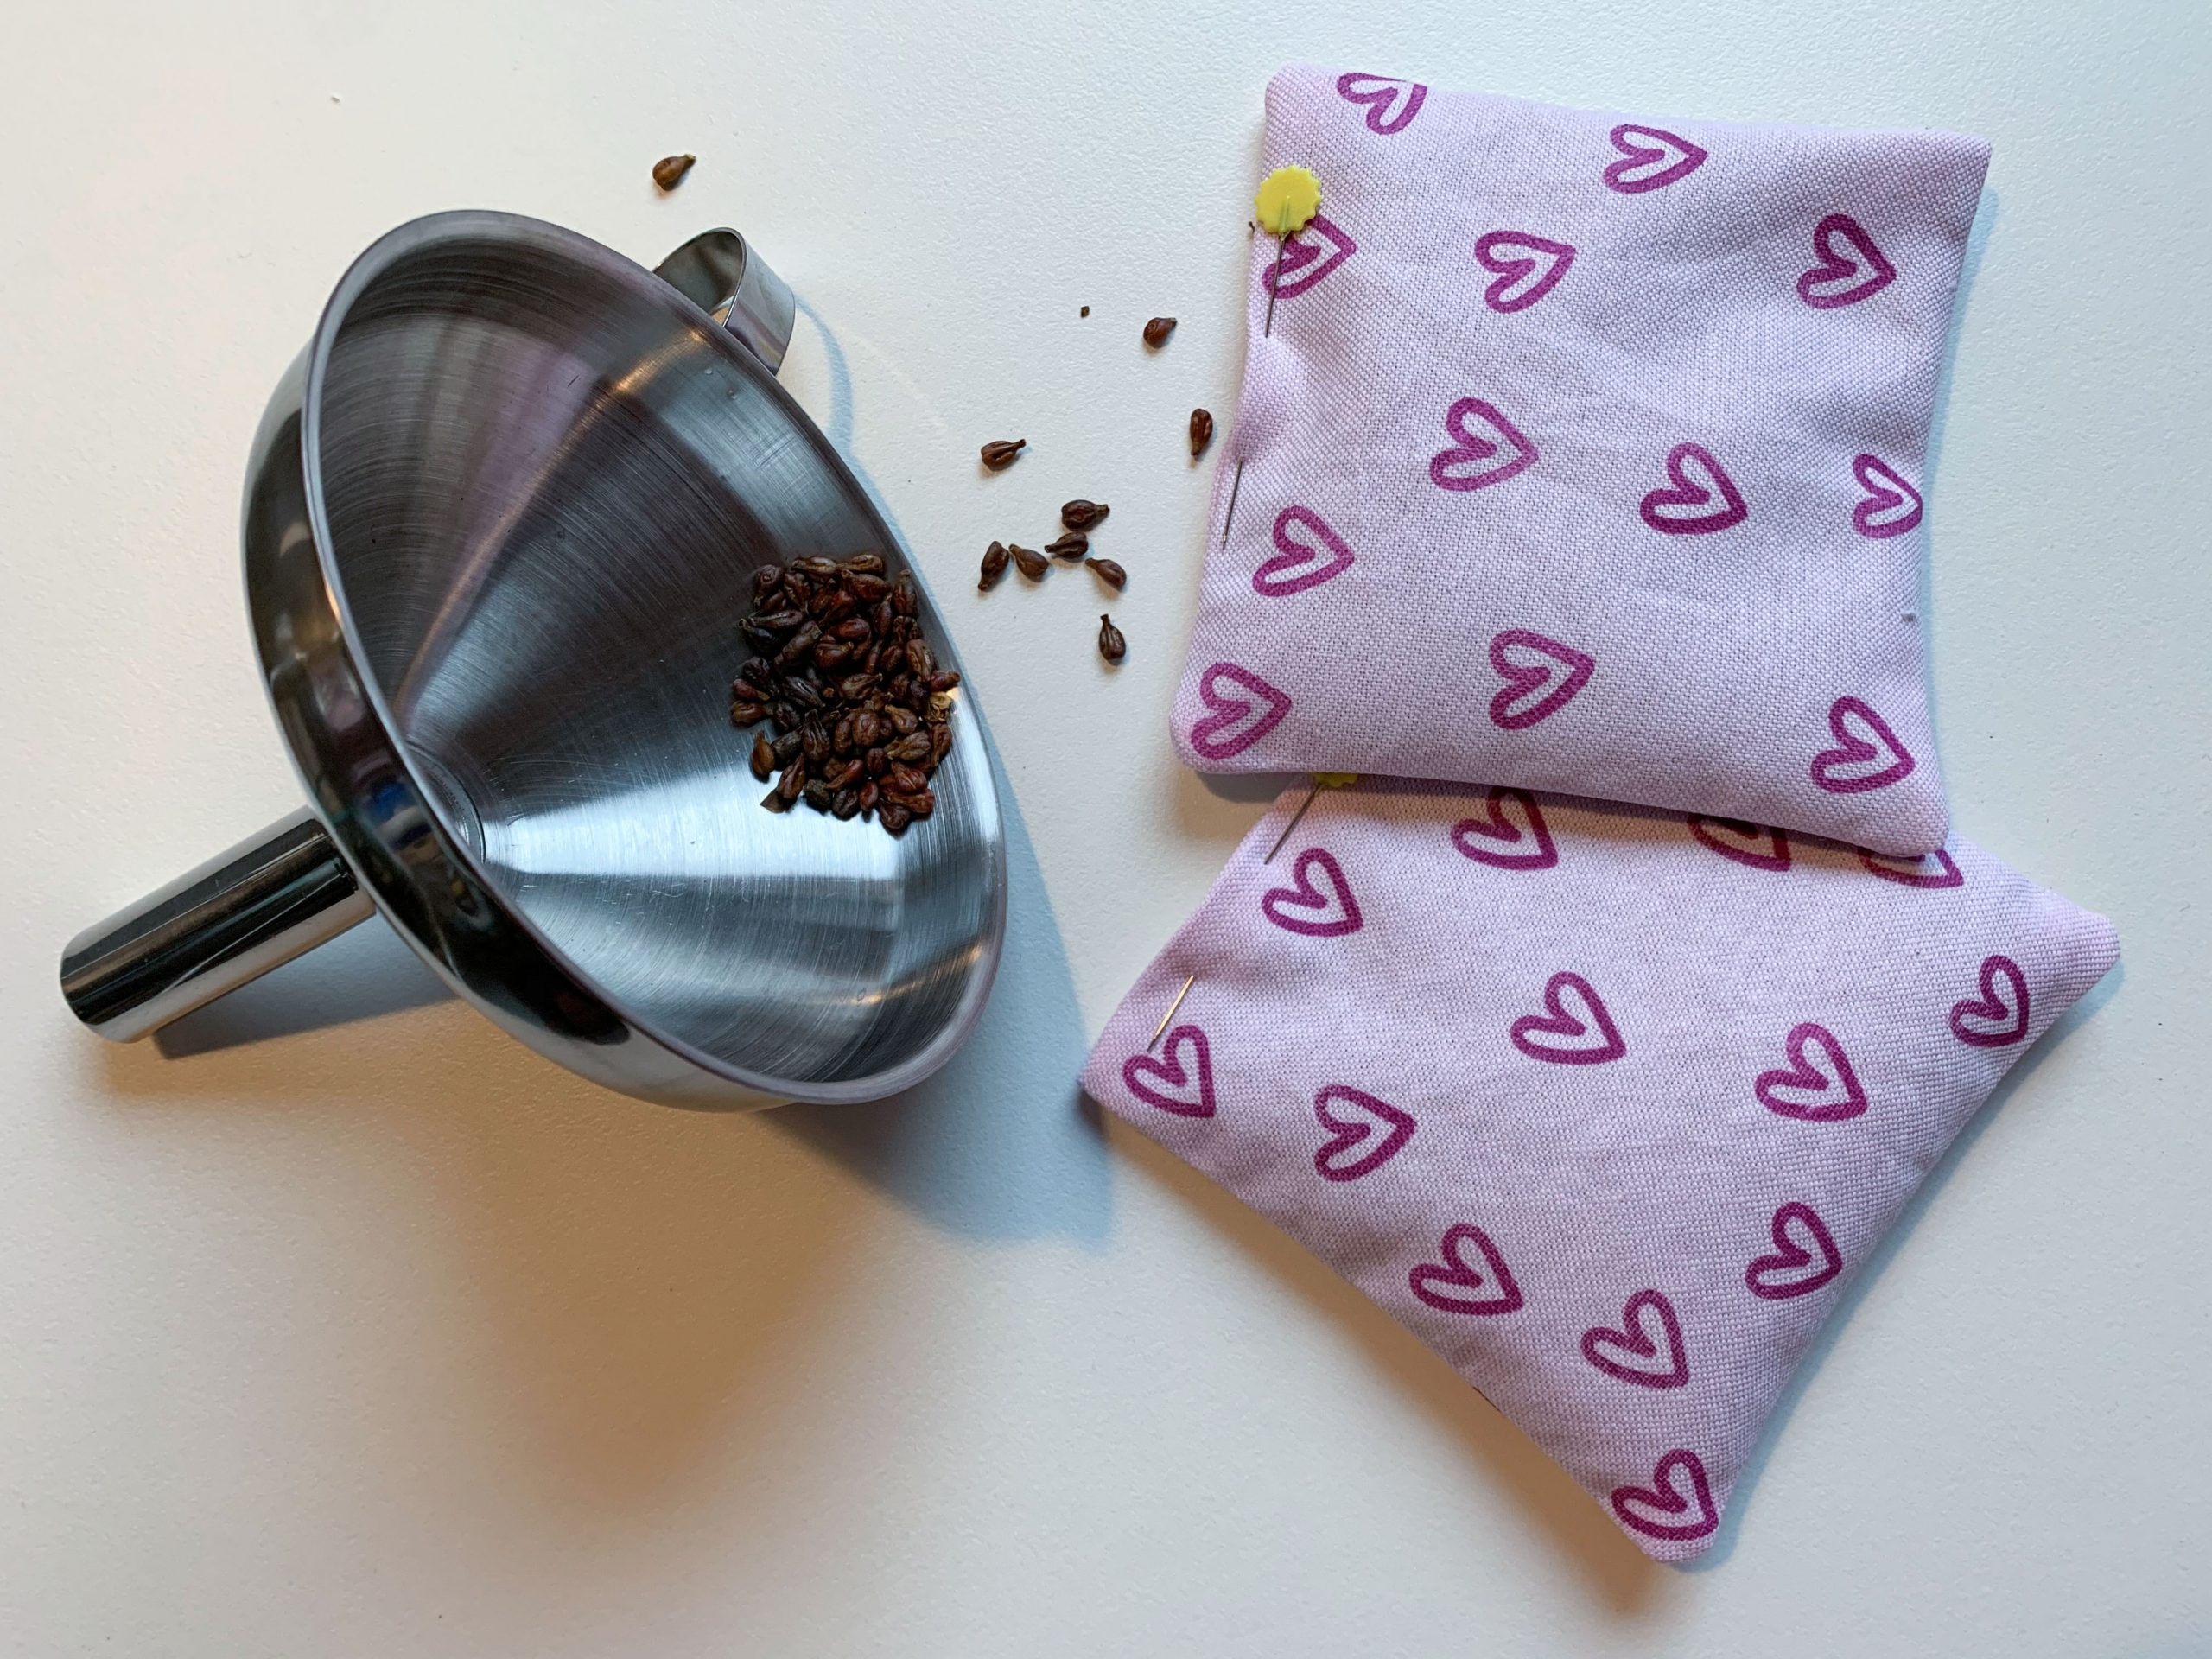 Sewing hand warmers – the hand warmers can also be filled with coffee beans, for example